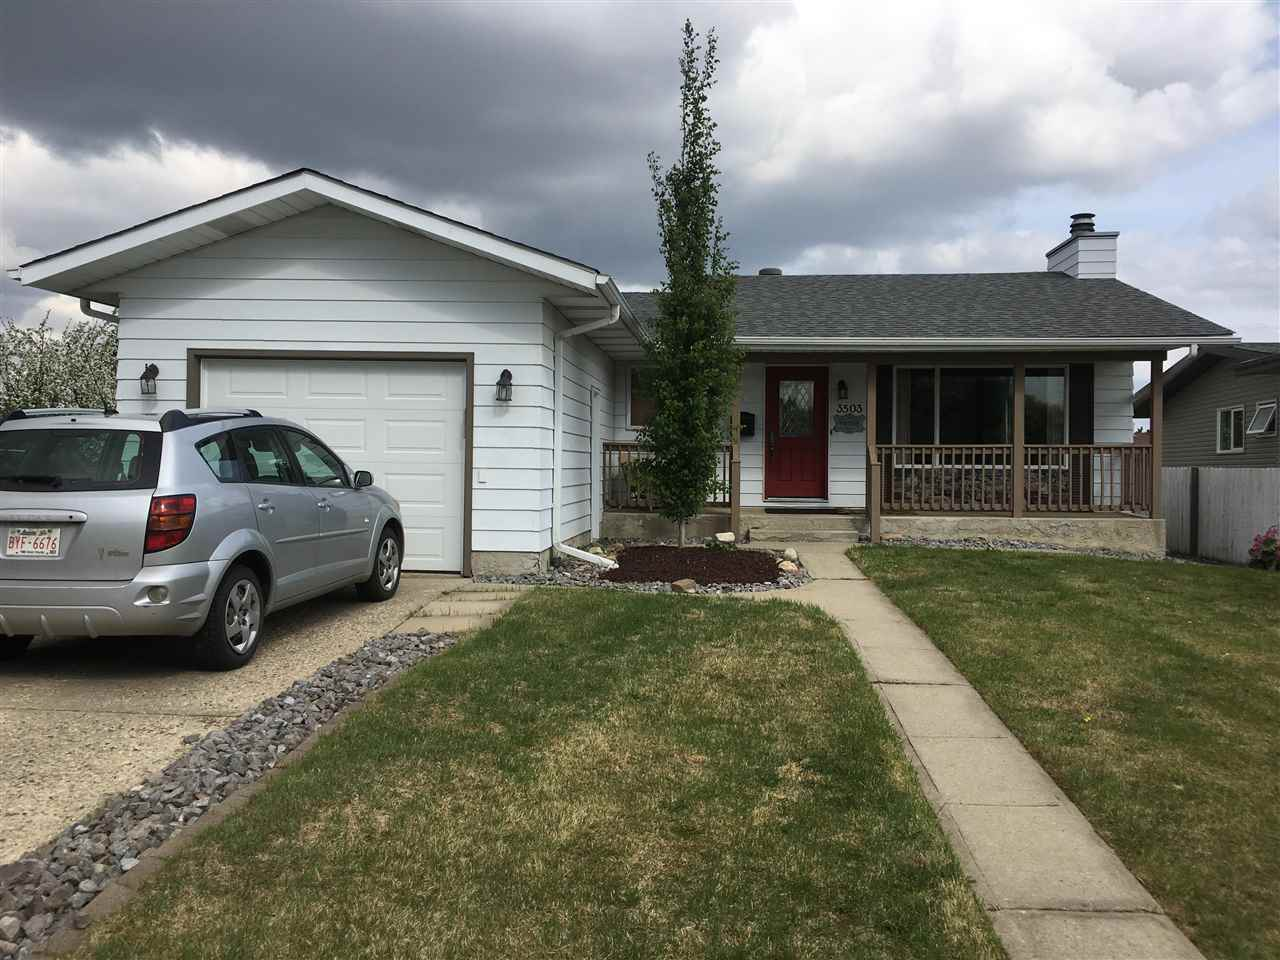 Main Photo: 3503 106A Street in Edmonton: Zone 16 House for sale : MLS®# E4111814